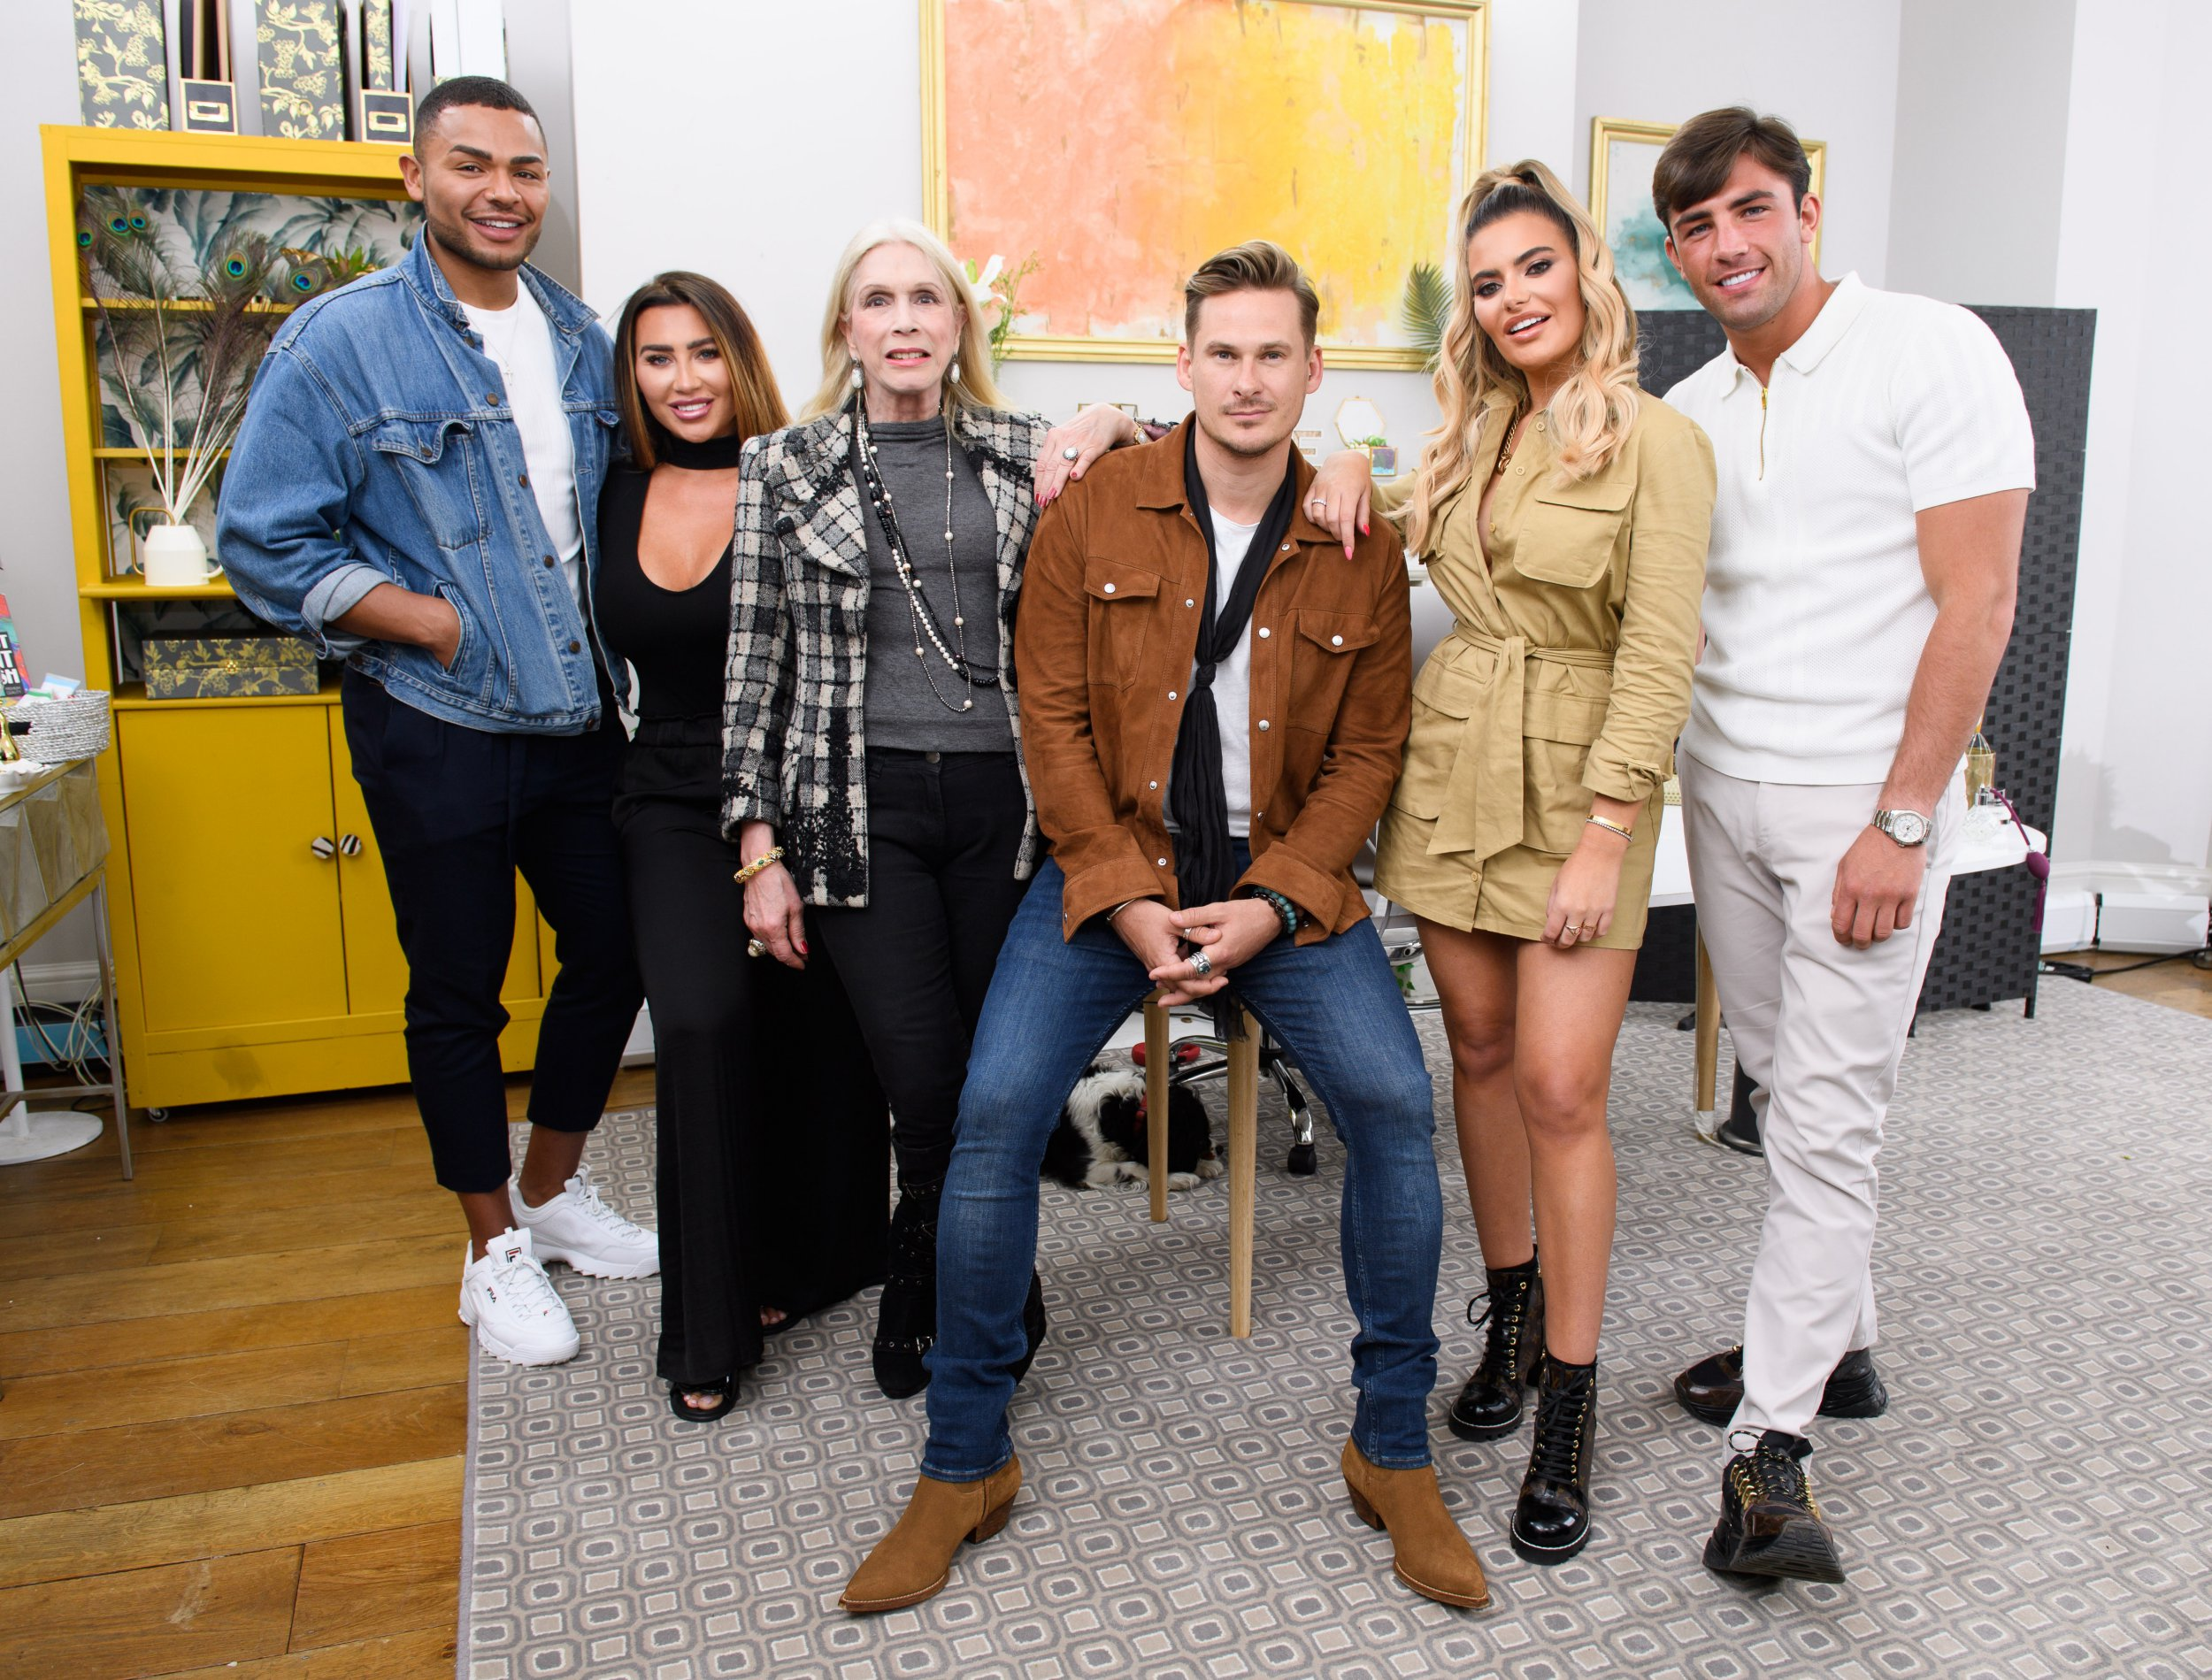 is celebs go dating real